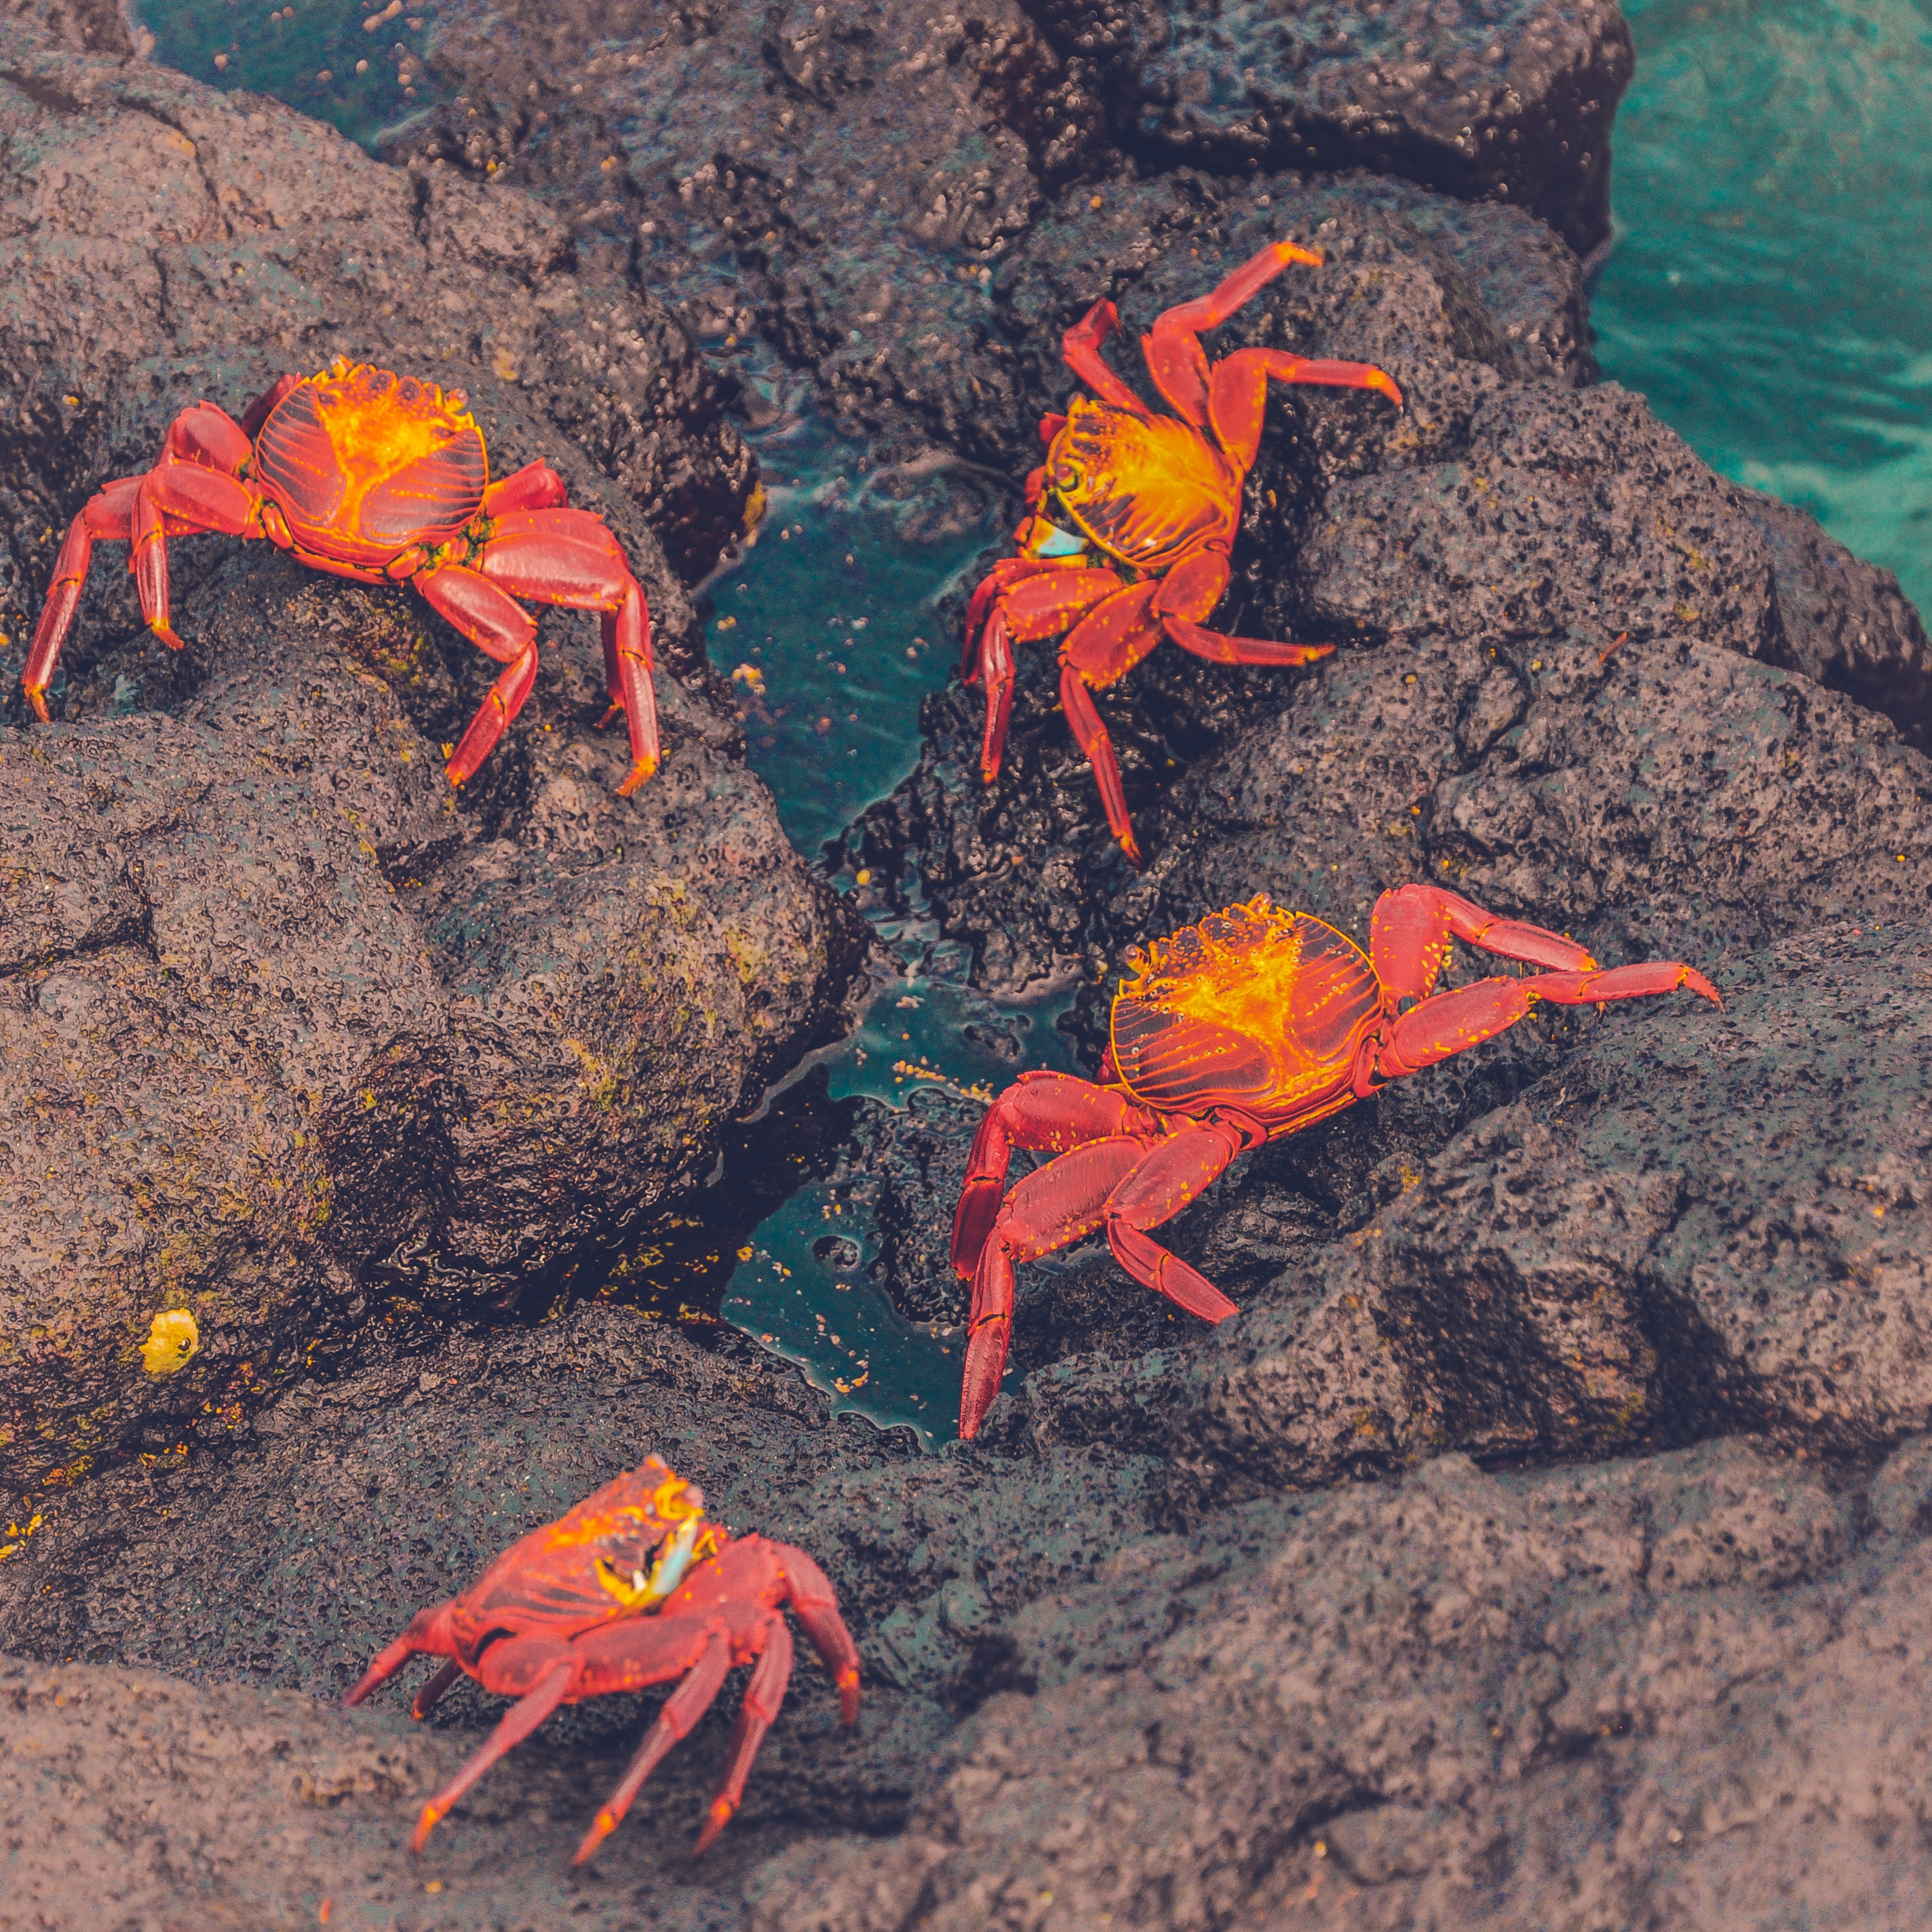 A Crabs Claw stories